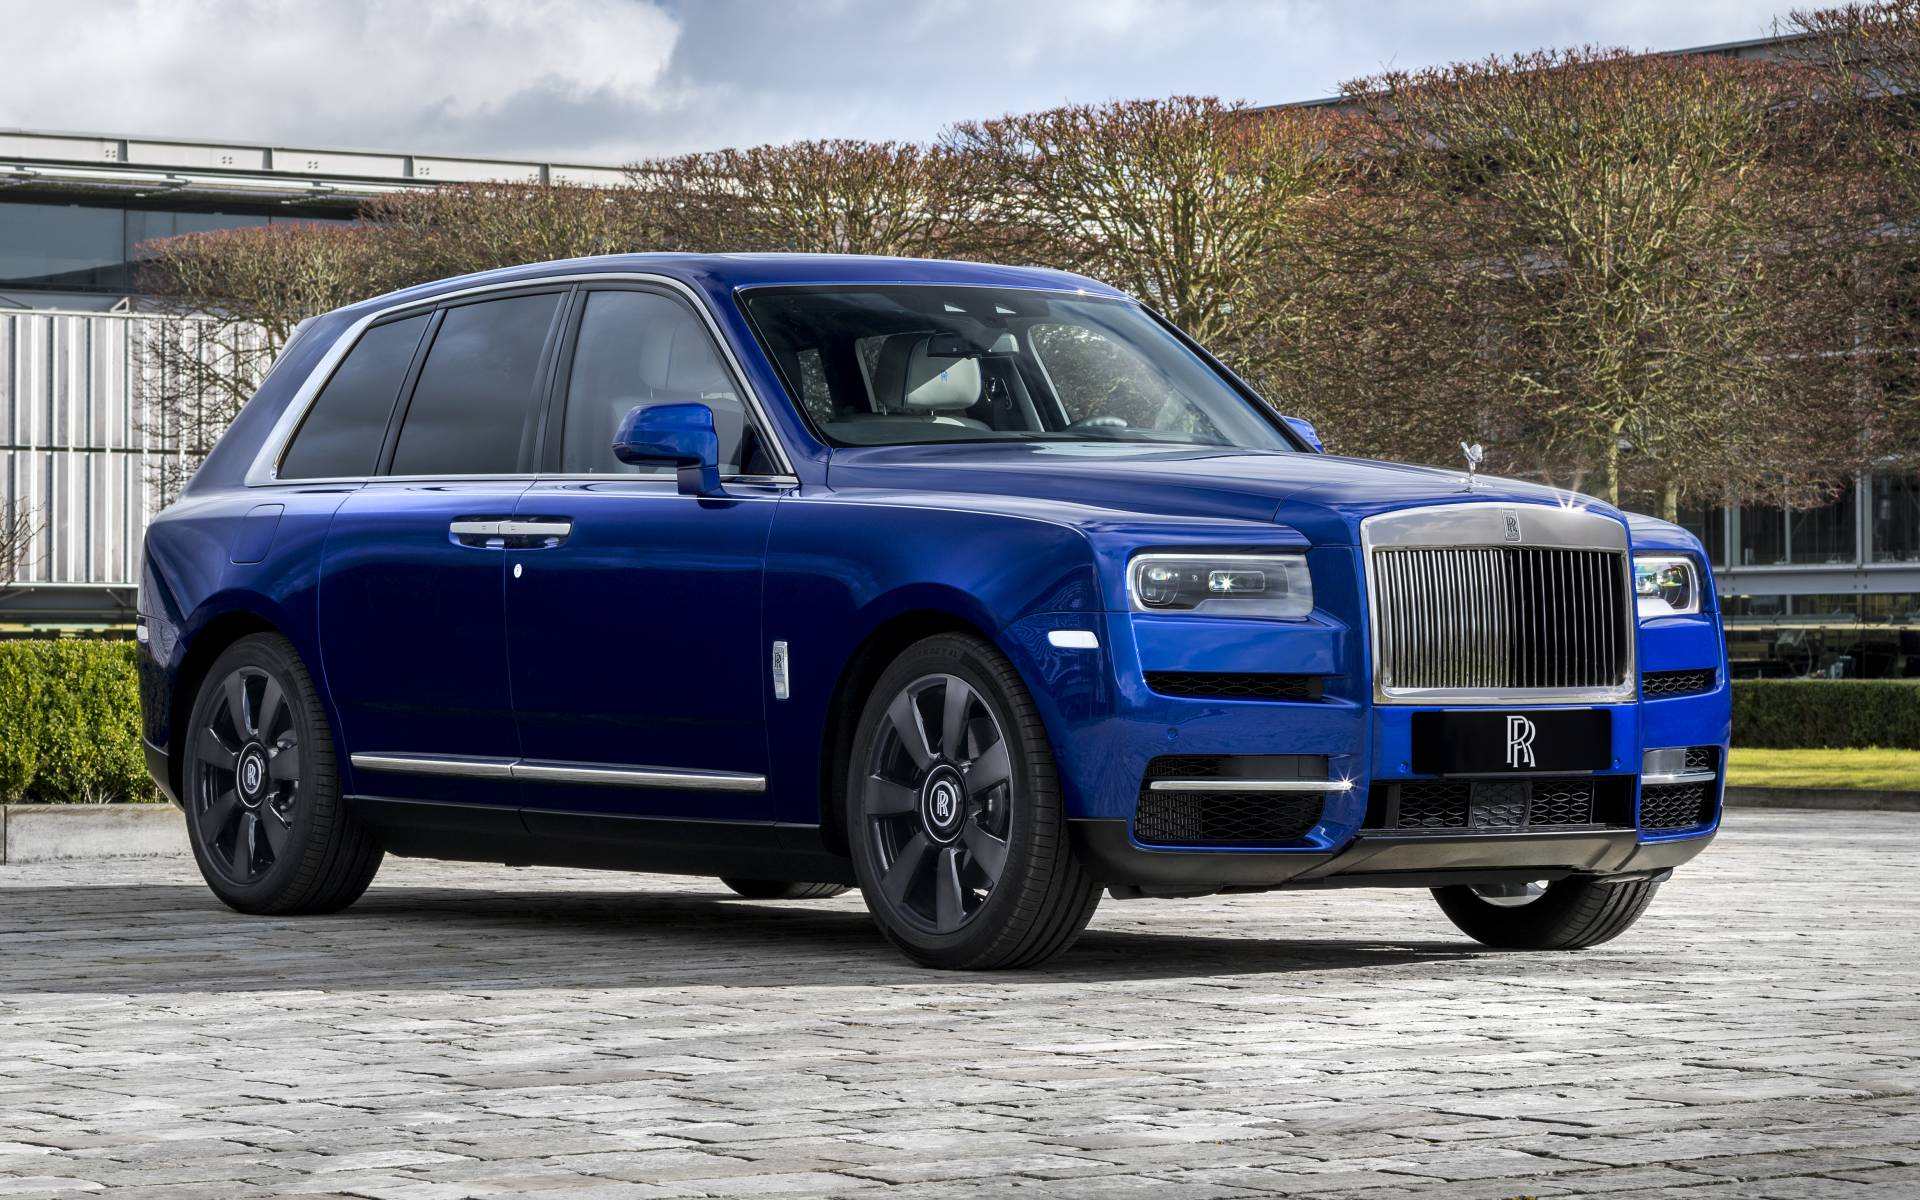 Cullinan Rolls Royce Wallpapers Top Free Cullinan Rolls Royce Backgrounds Wallpaperaccess